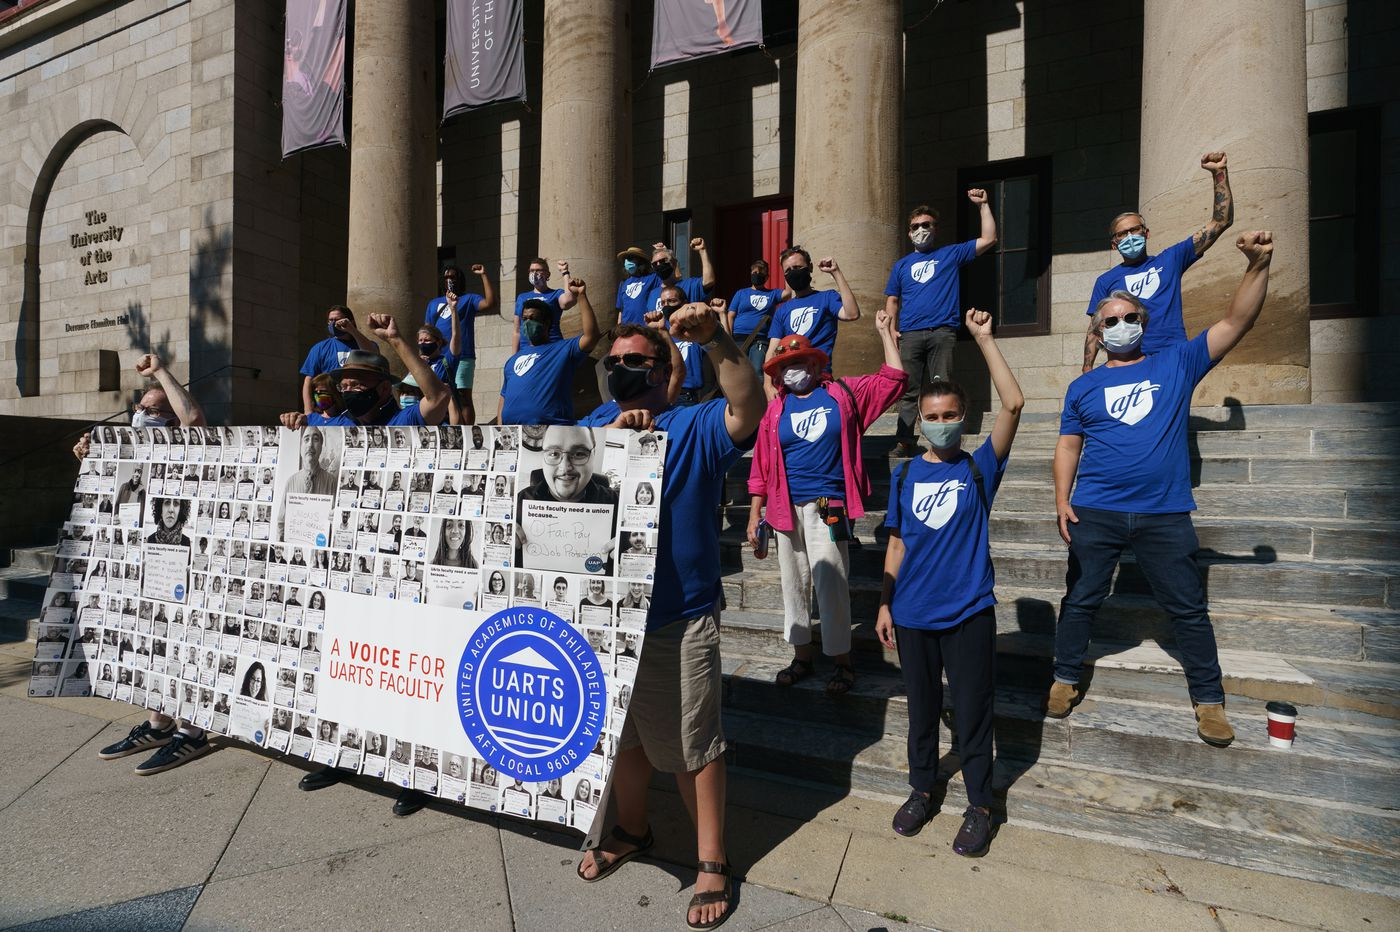 University of the Arts faculty in Philadelphia have voted to unionize